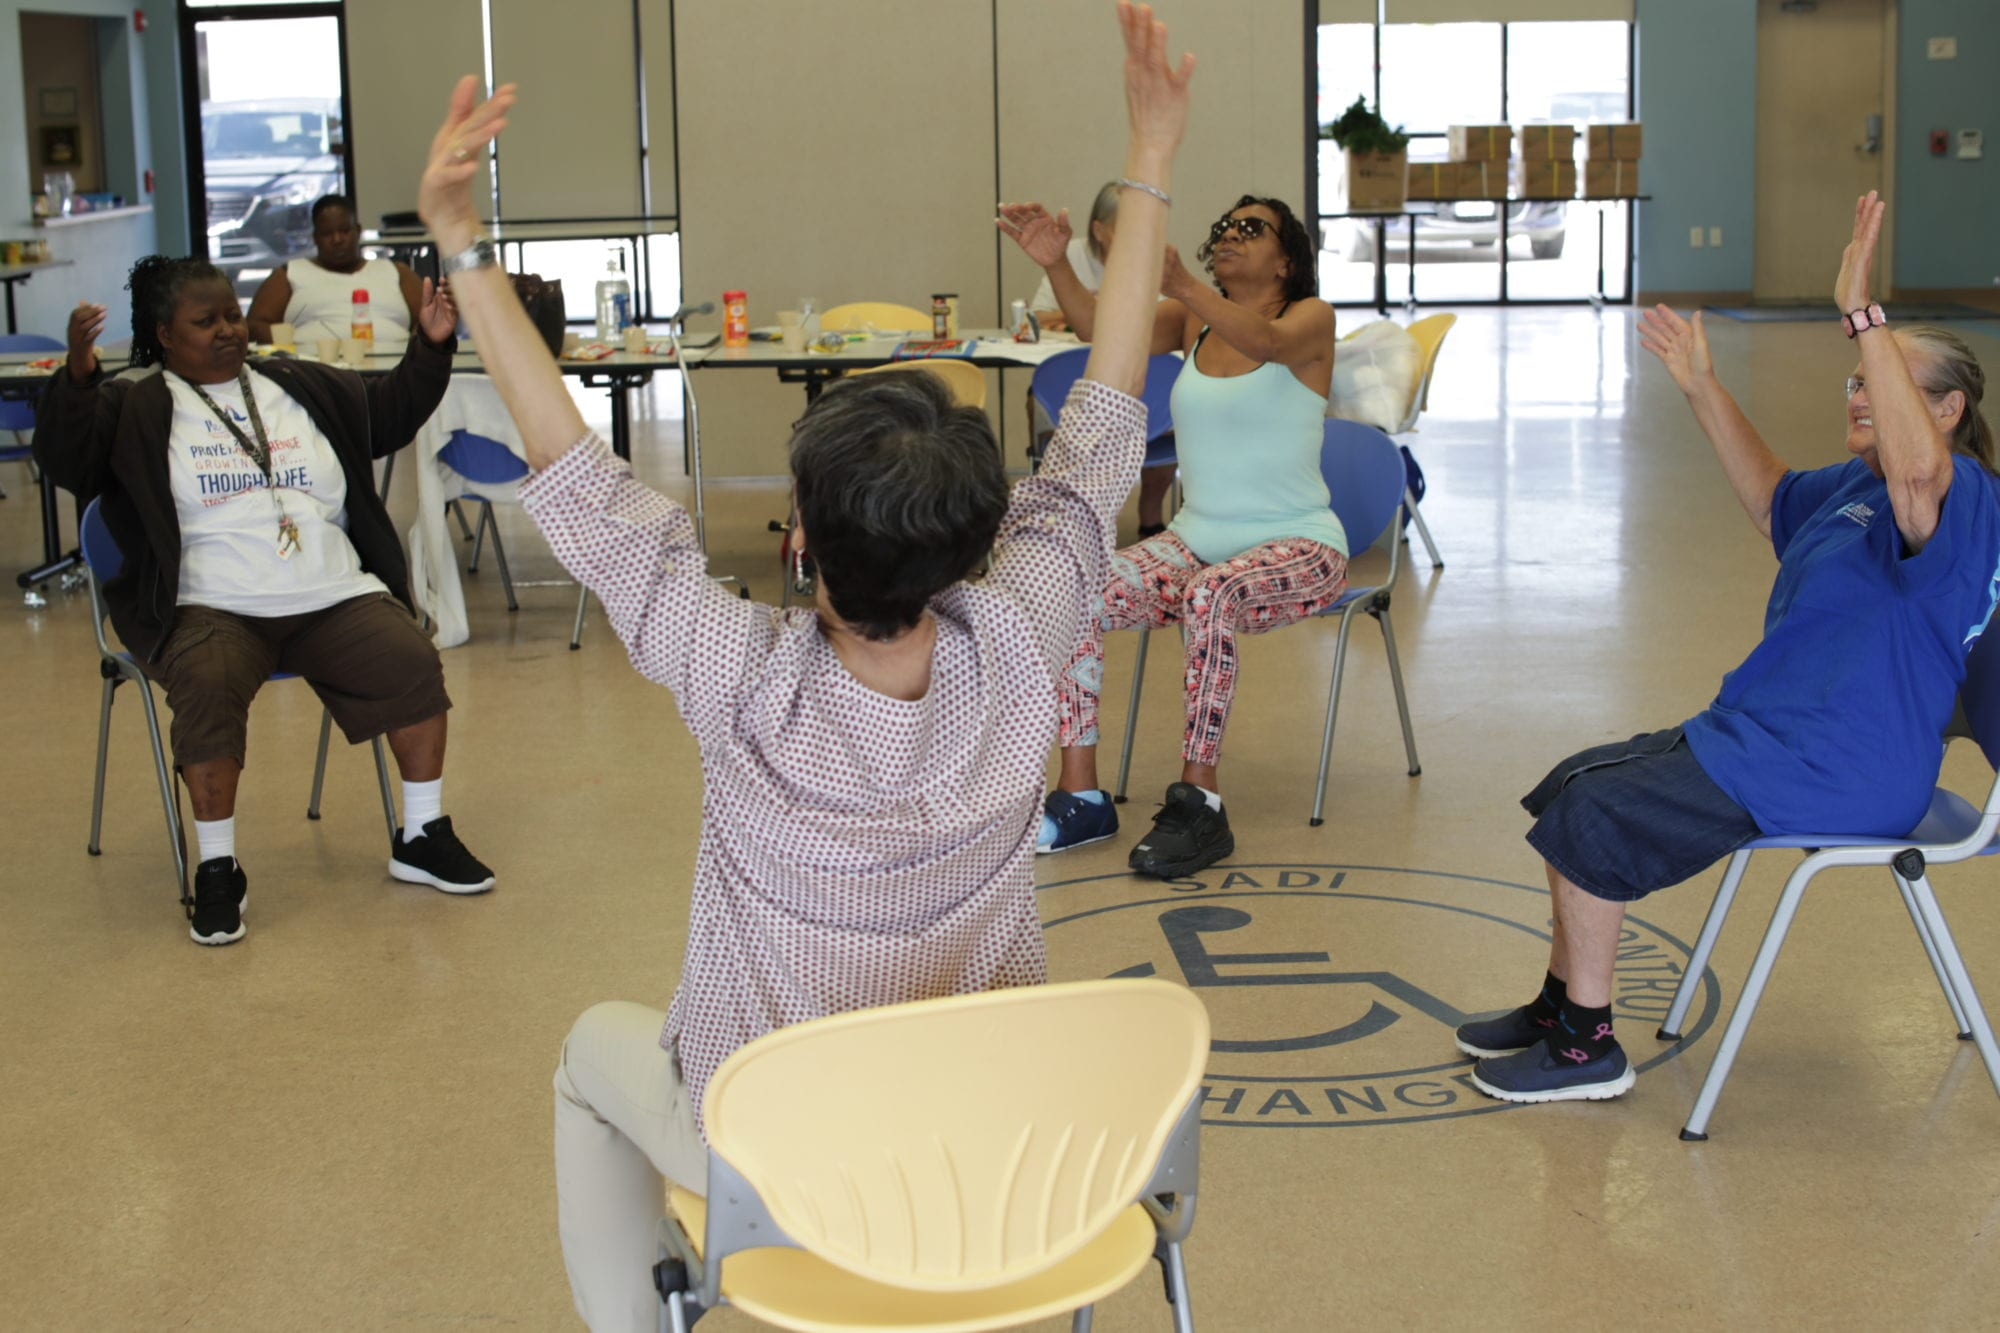 Exercise Class for the disabled at SADI in Missouri